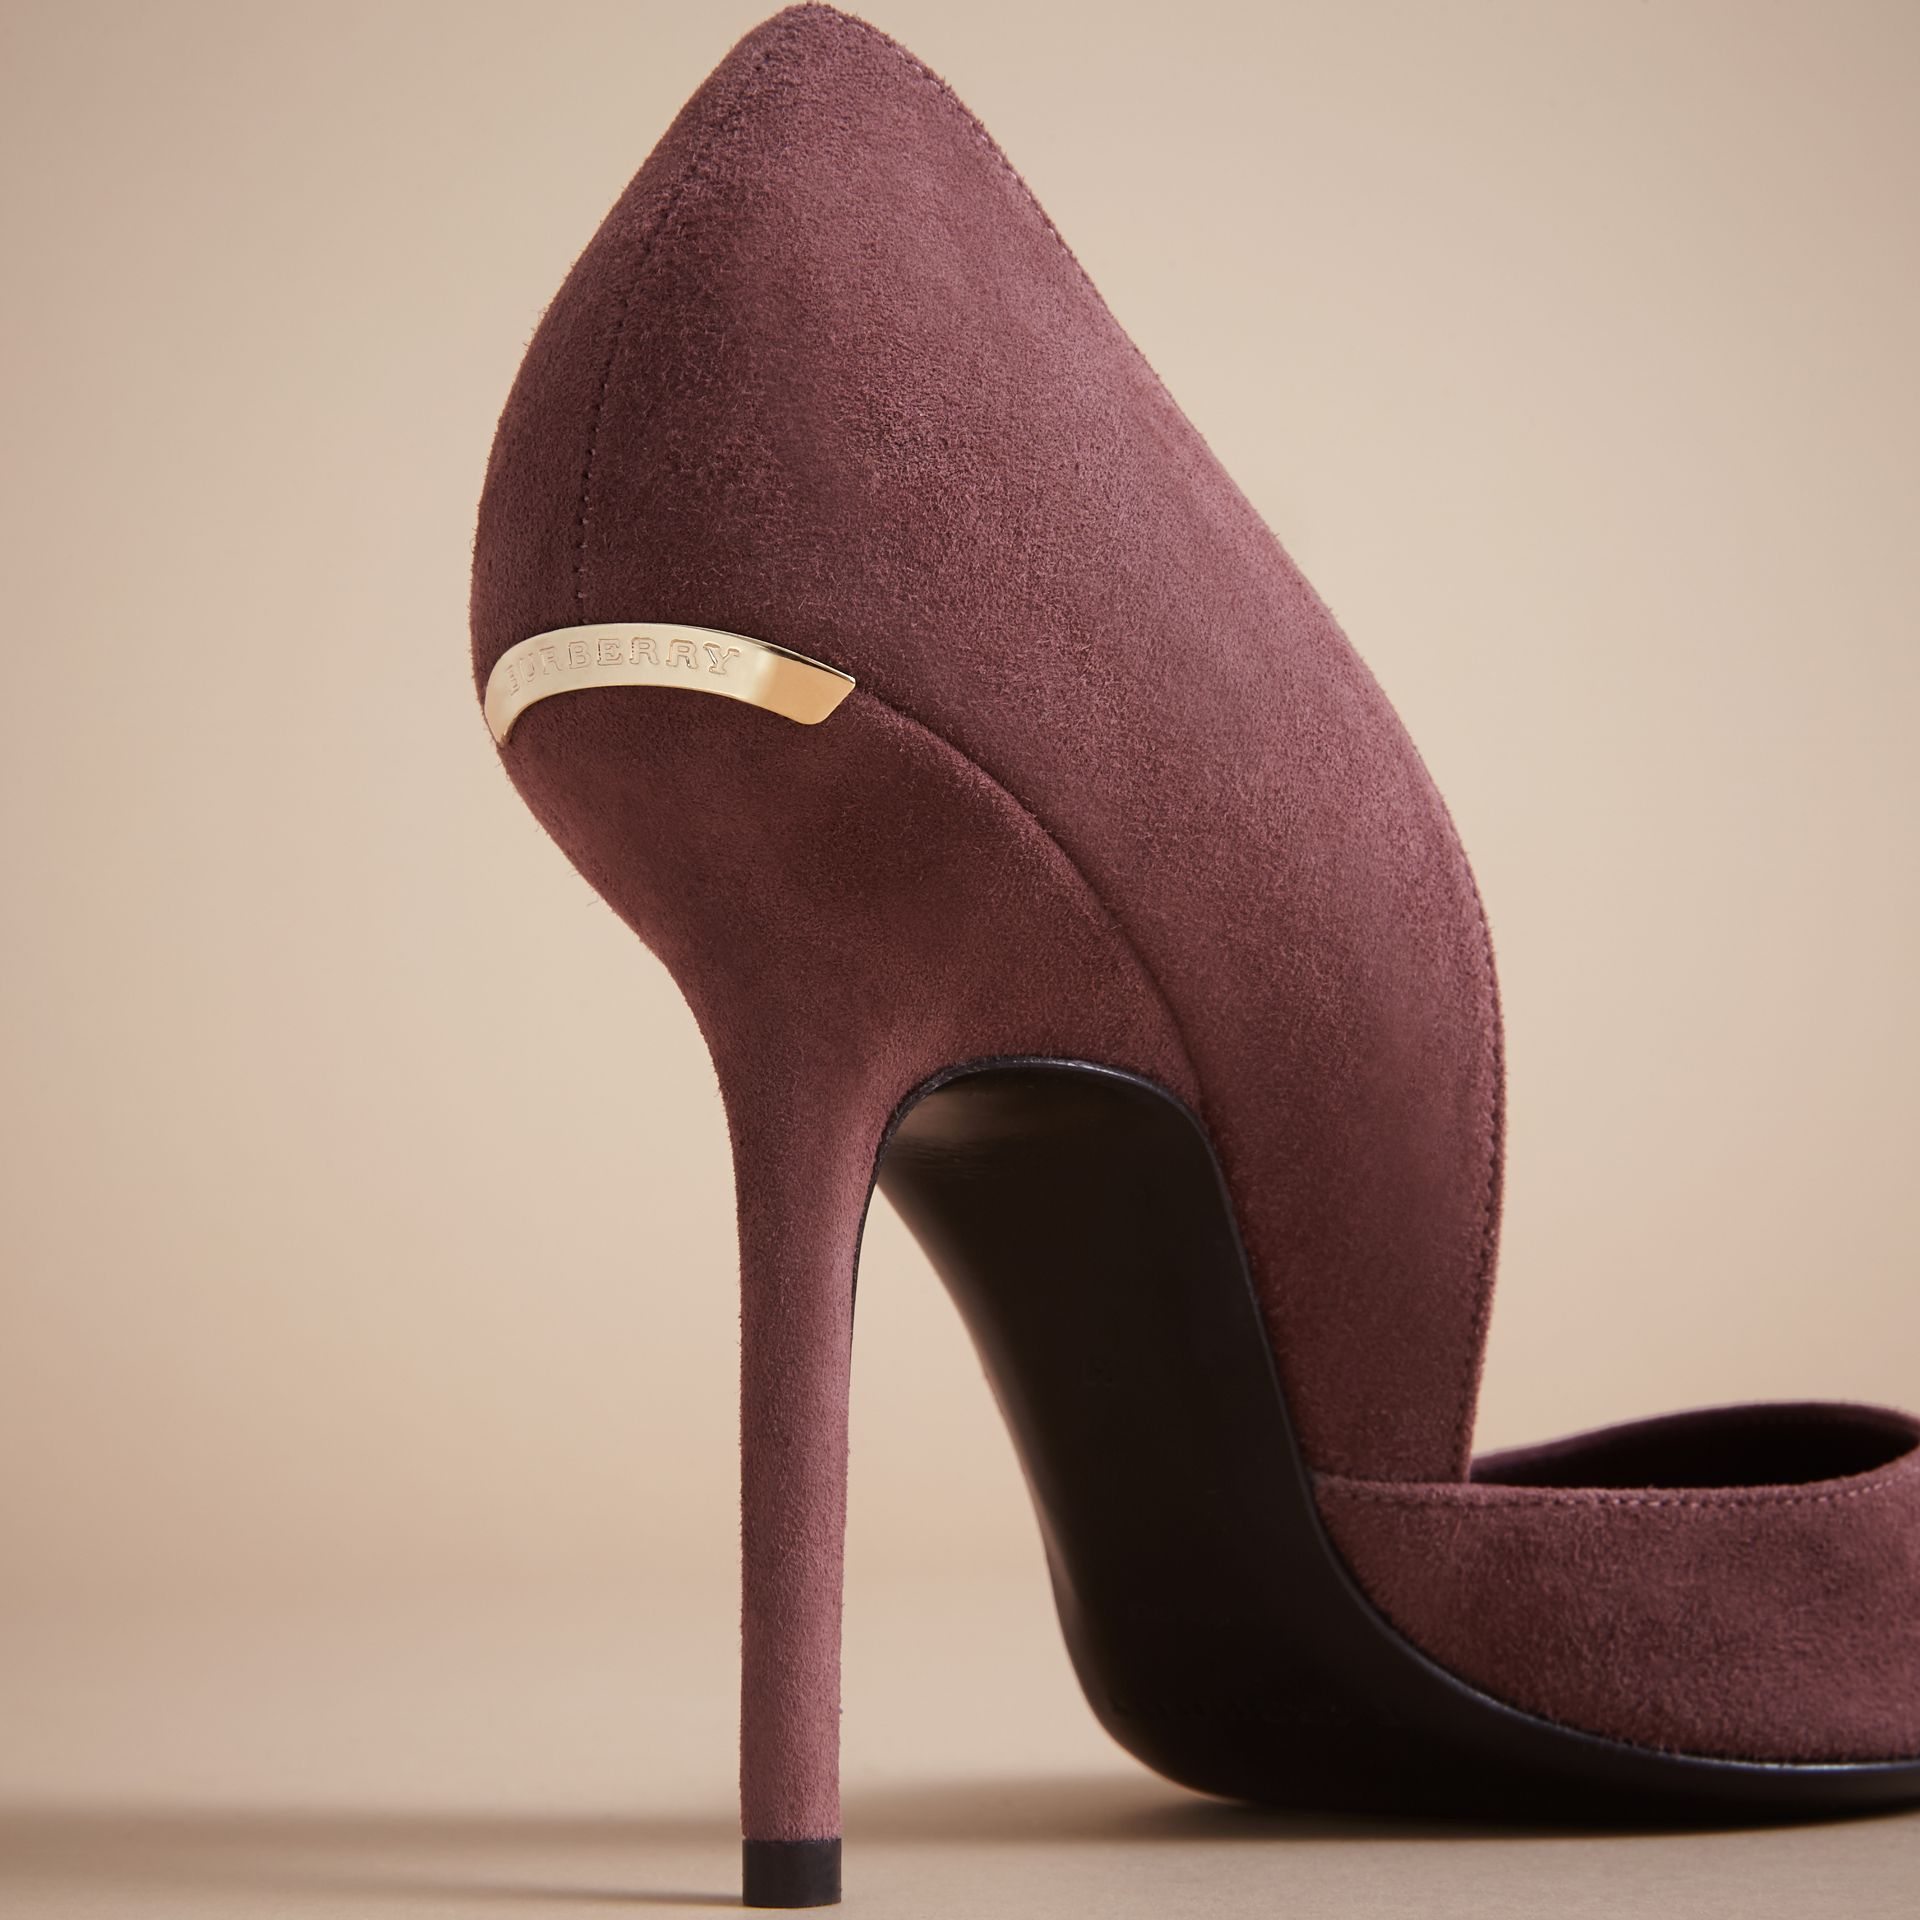 Point-toe Suede D'Orsay Pumps in Taupe Rose - Women | Burberry - gallery image 2